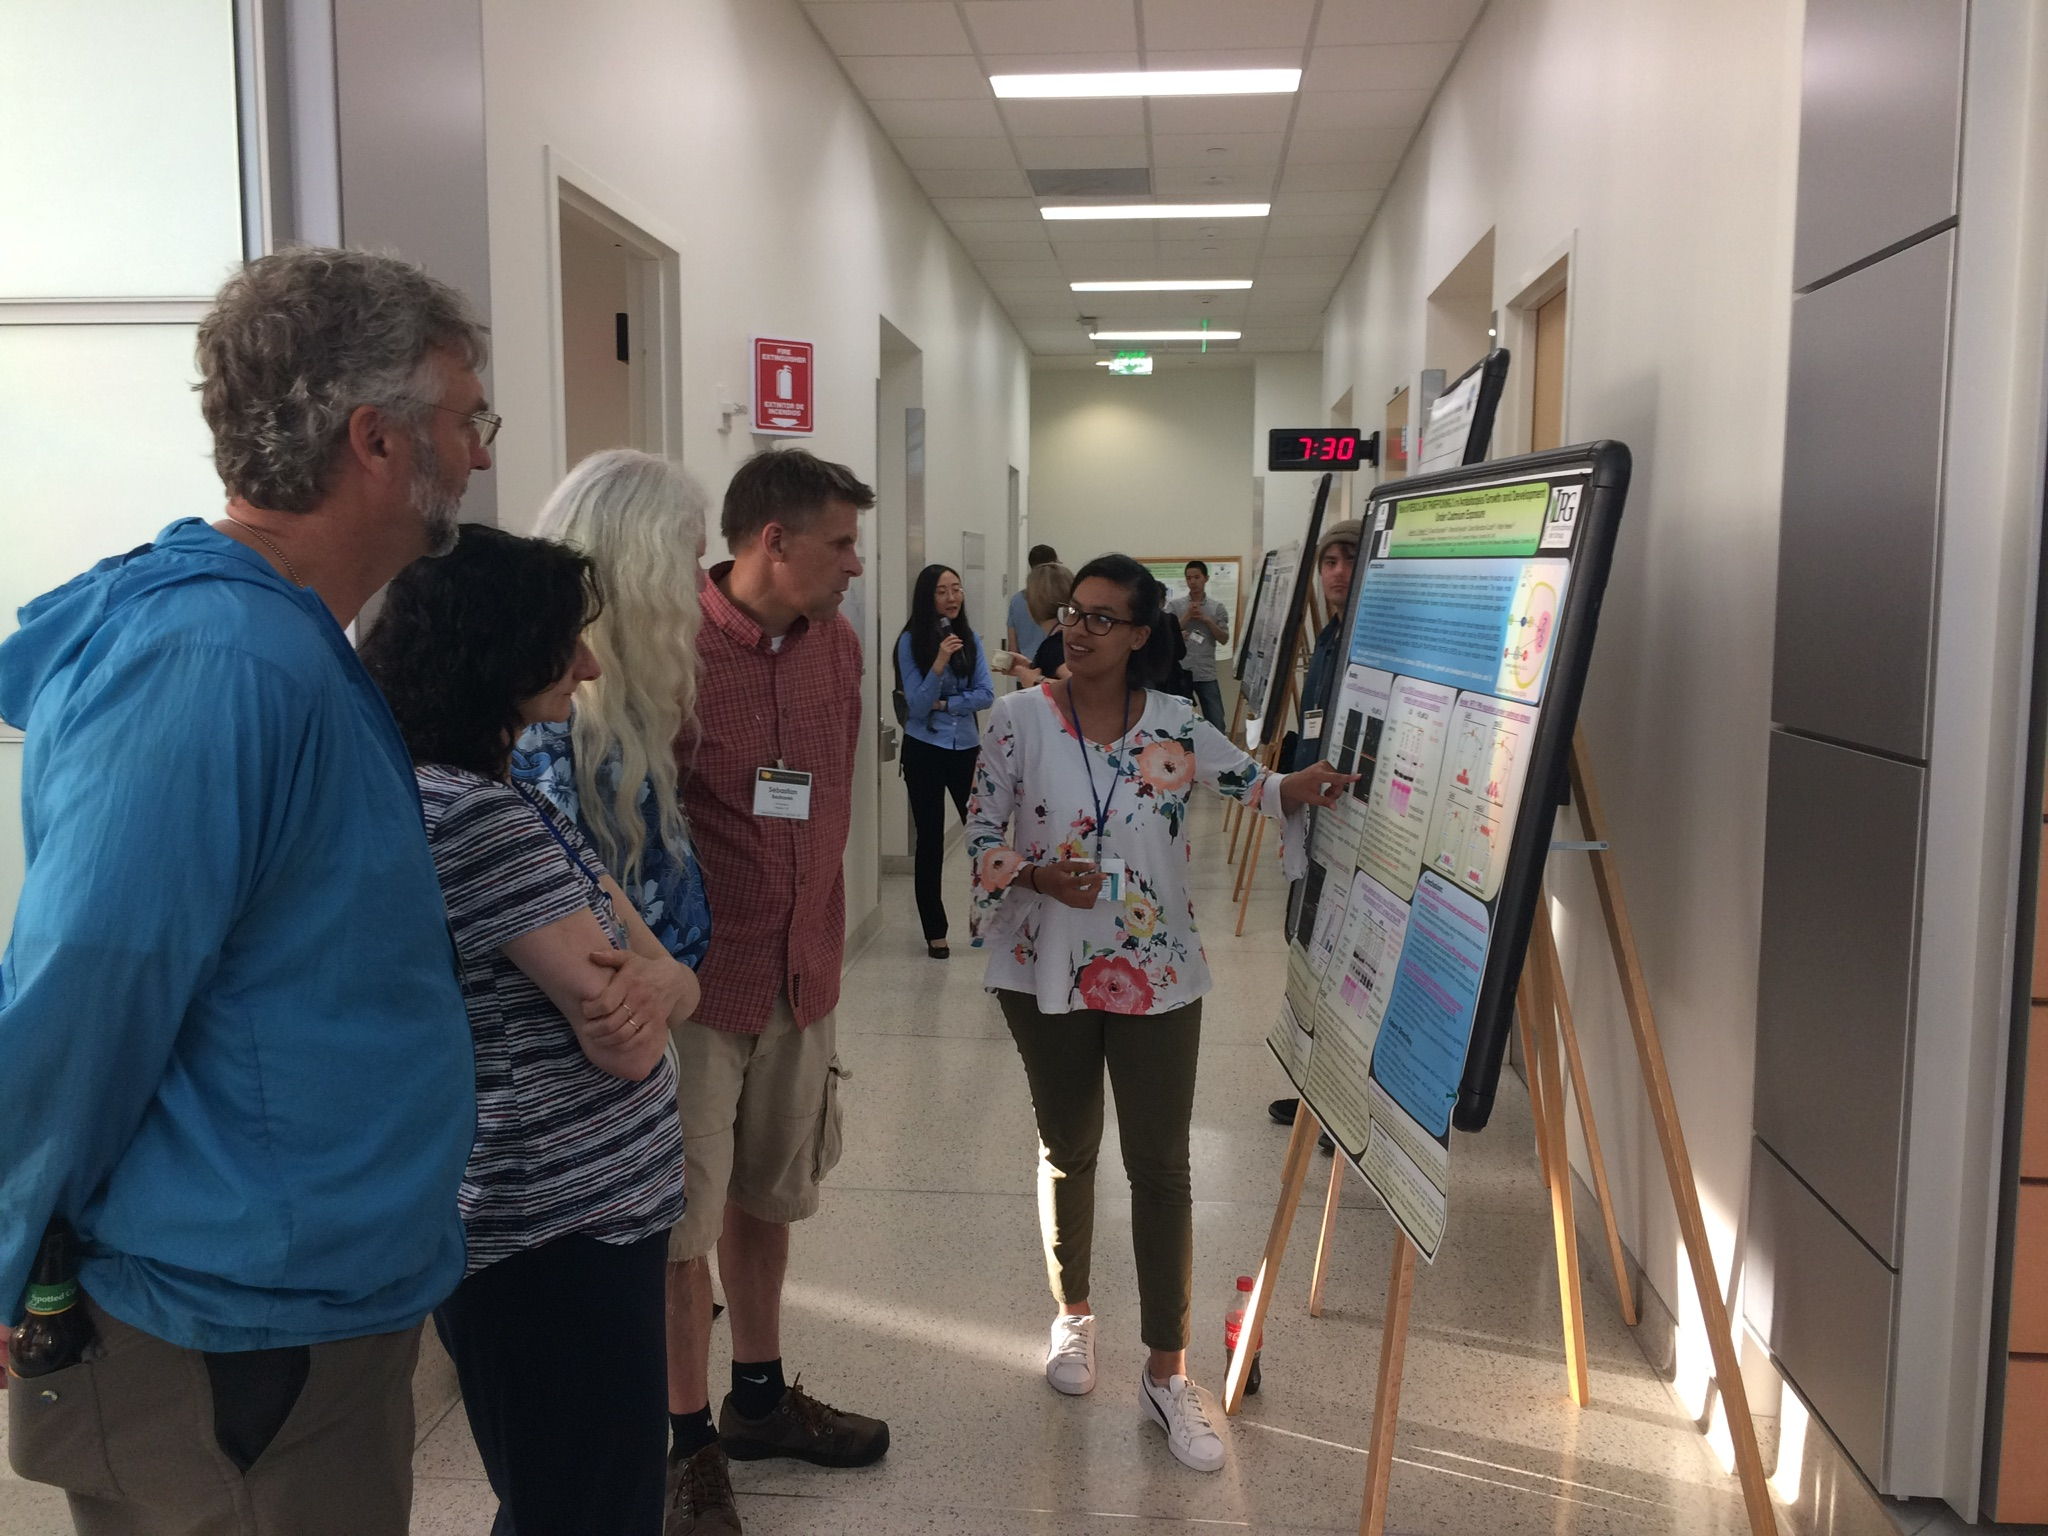 Lee-Ann explaining her poster to conference organzers at 2018 Plant Cell Dynamics meeting